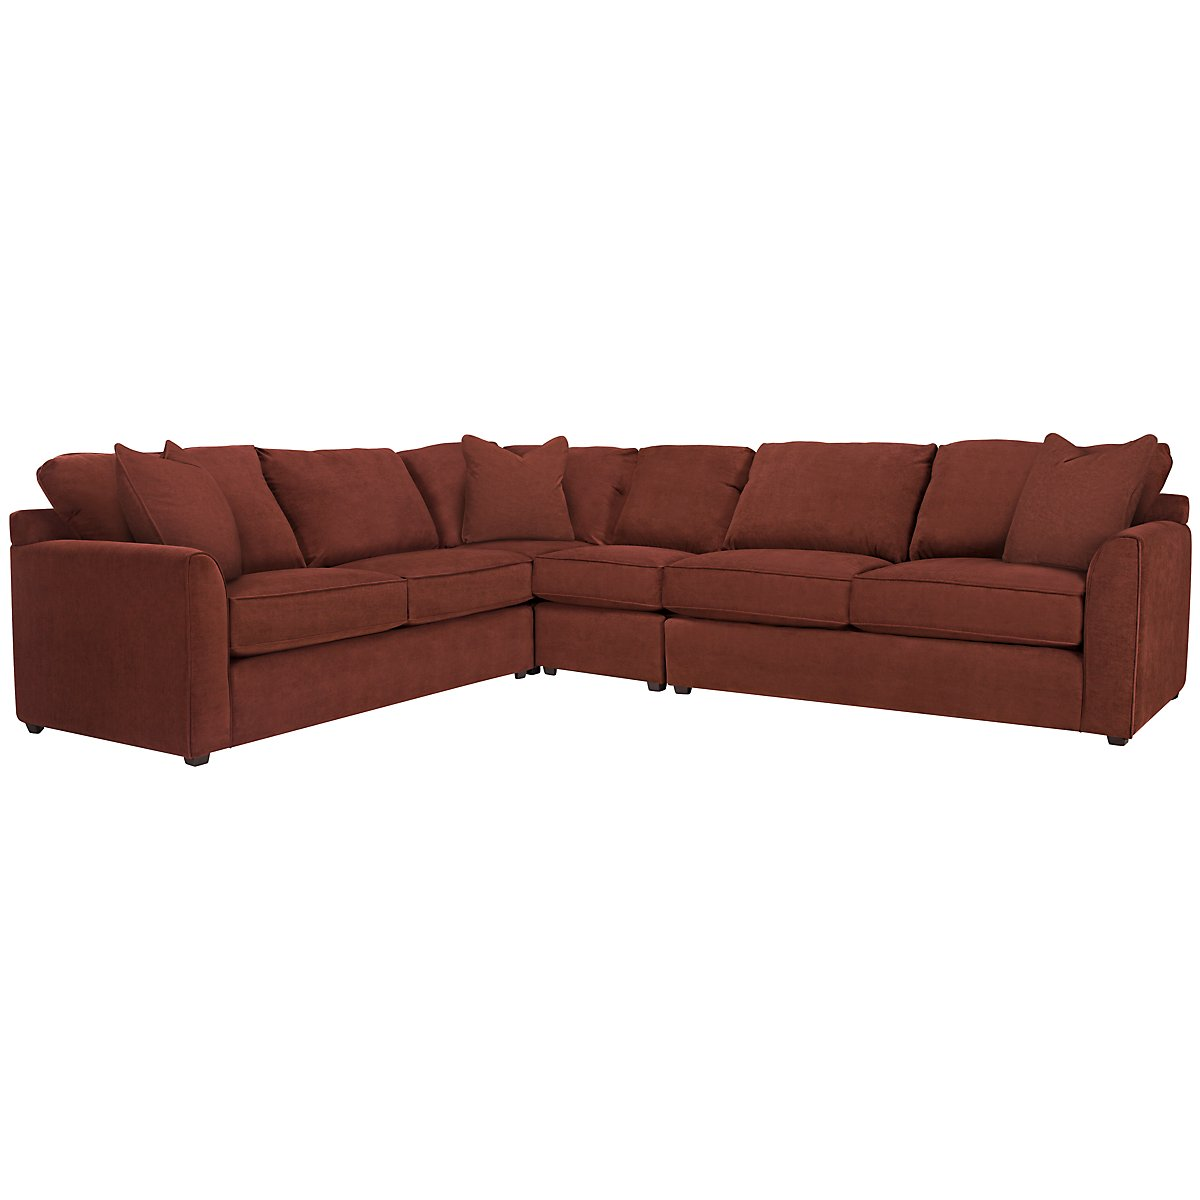 Express3 Red Microfiber Large Two-Arm Sectional